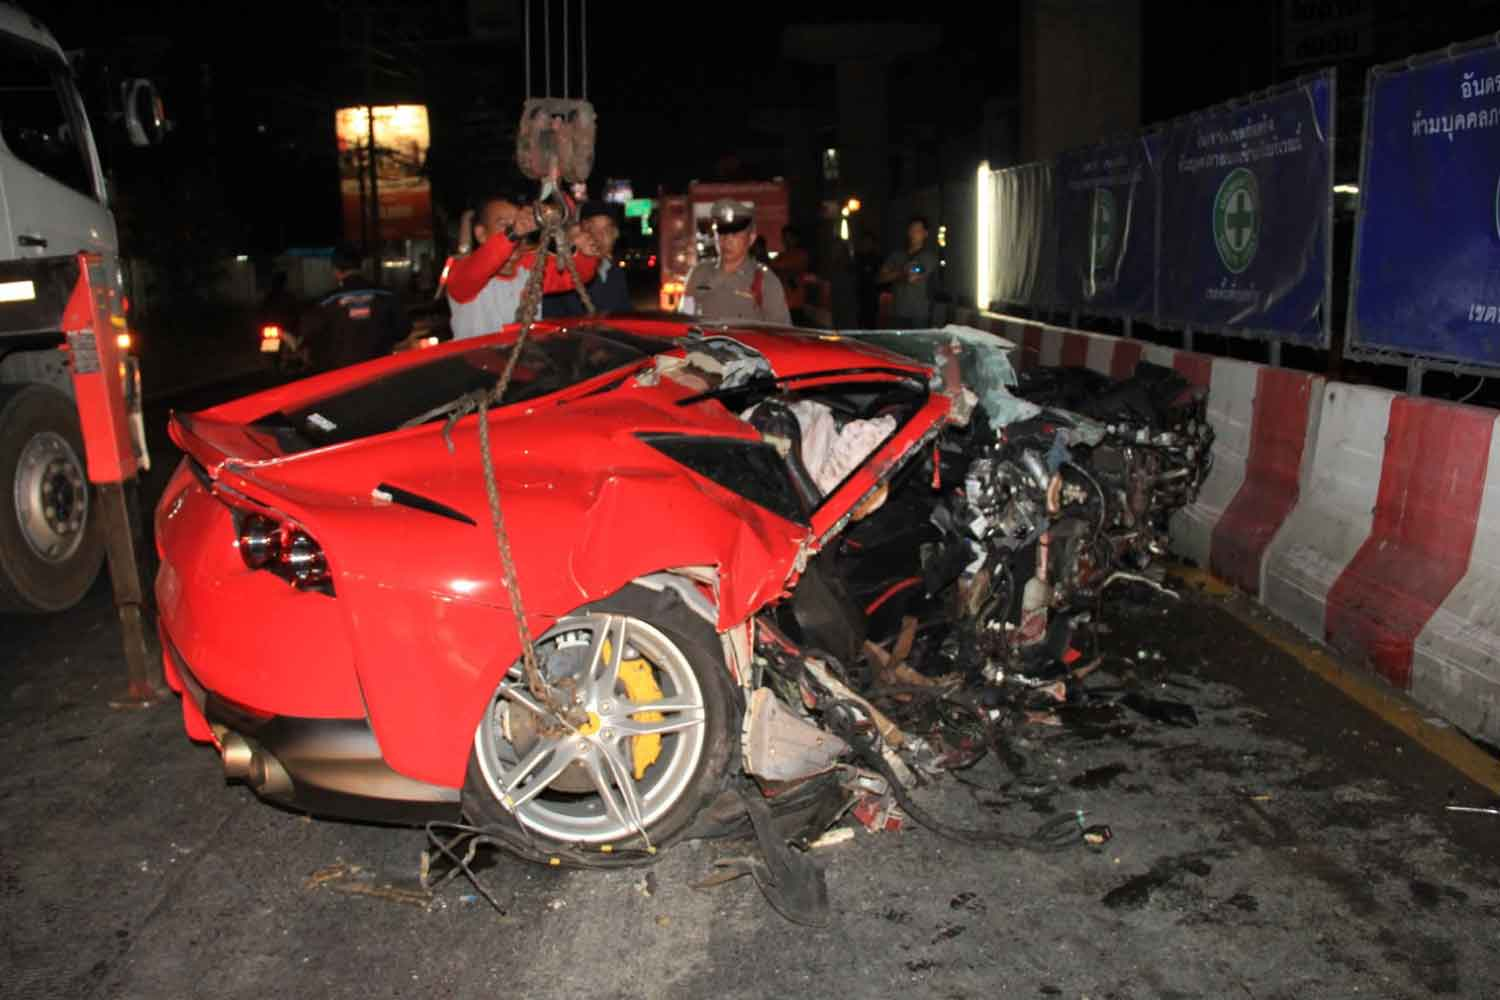 The wreckage of the crashed Ferrari, which hit a concrete barrier on Srinakarin Road in Muang district of Samut Prakan early Wednesday morning. (Photo by Sutthiwit Chayutworakan)